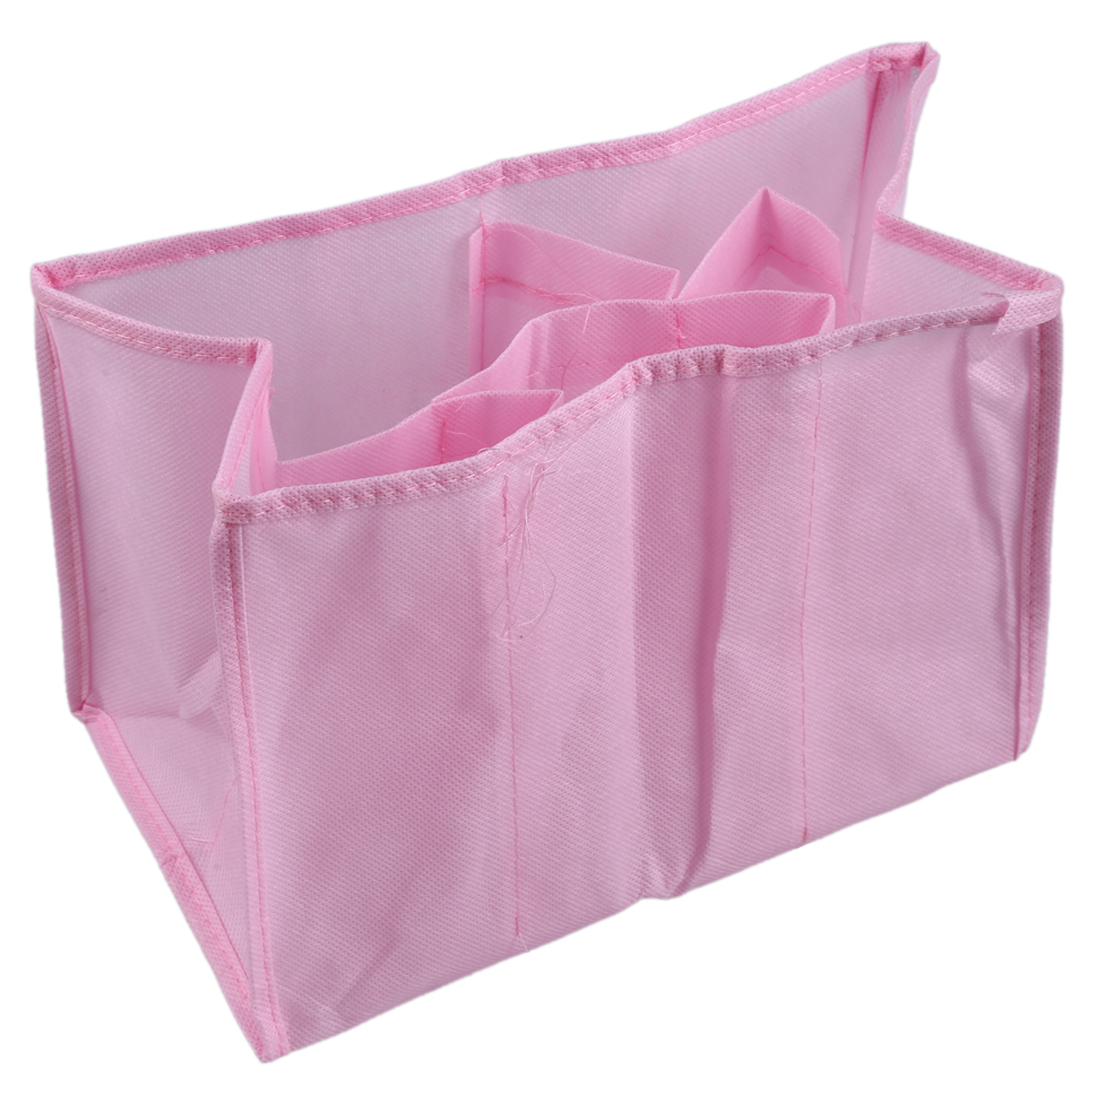 Shop all Diapering & Potty Diapers Wipes Diaper Bags Baby Care. Closet Garment Bags. Luggage. Garment Sleeves. Other Travel Accessories. Shoe Storage. Messenger Bags. Closet Systems. DALIX 60